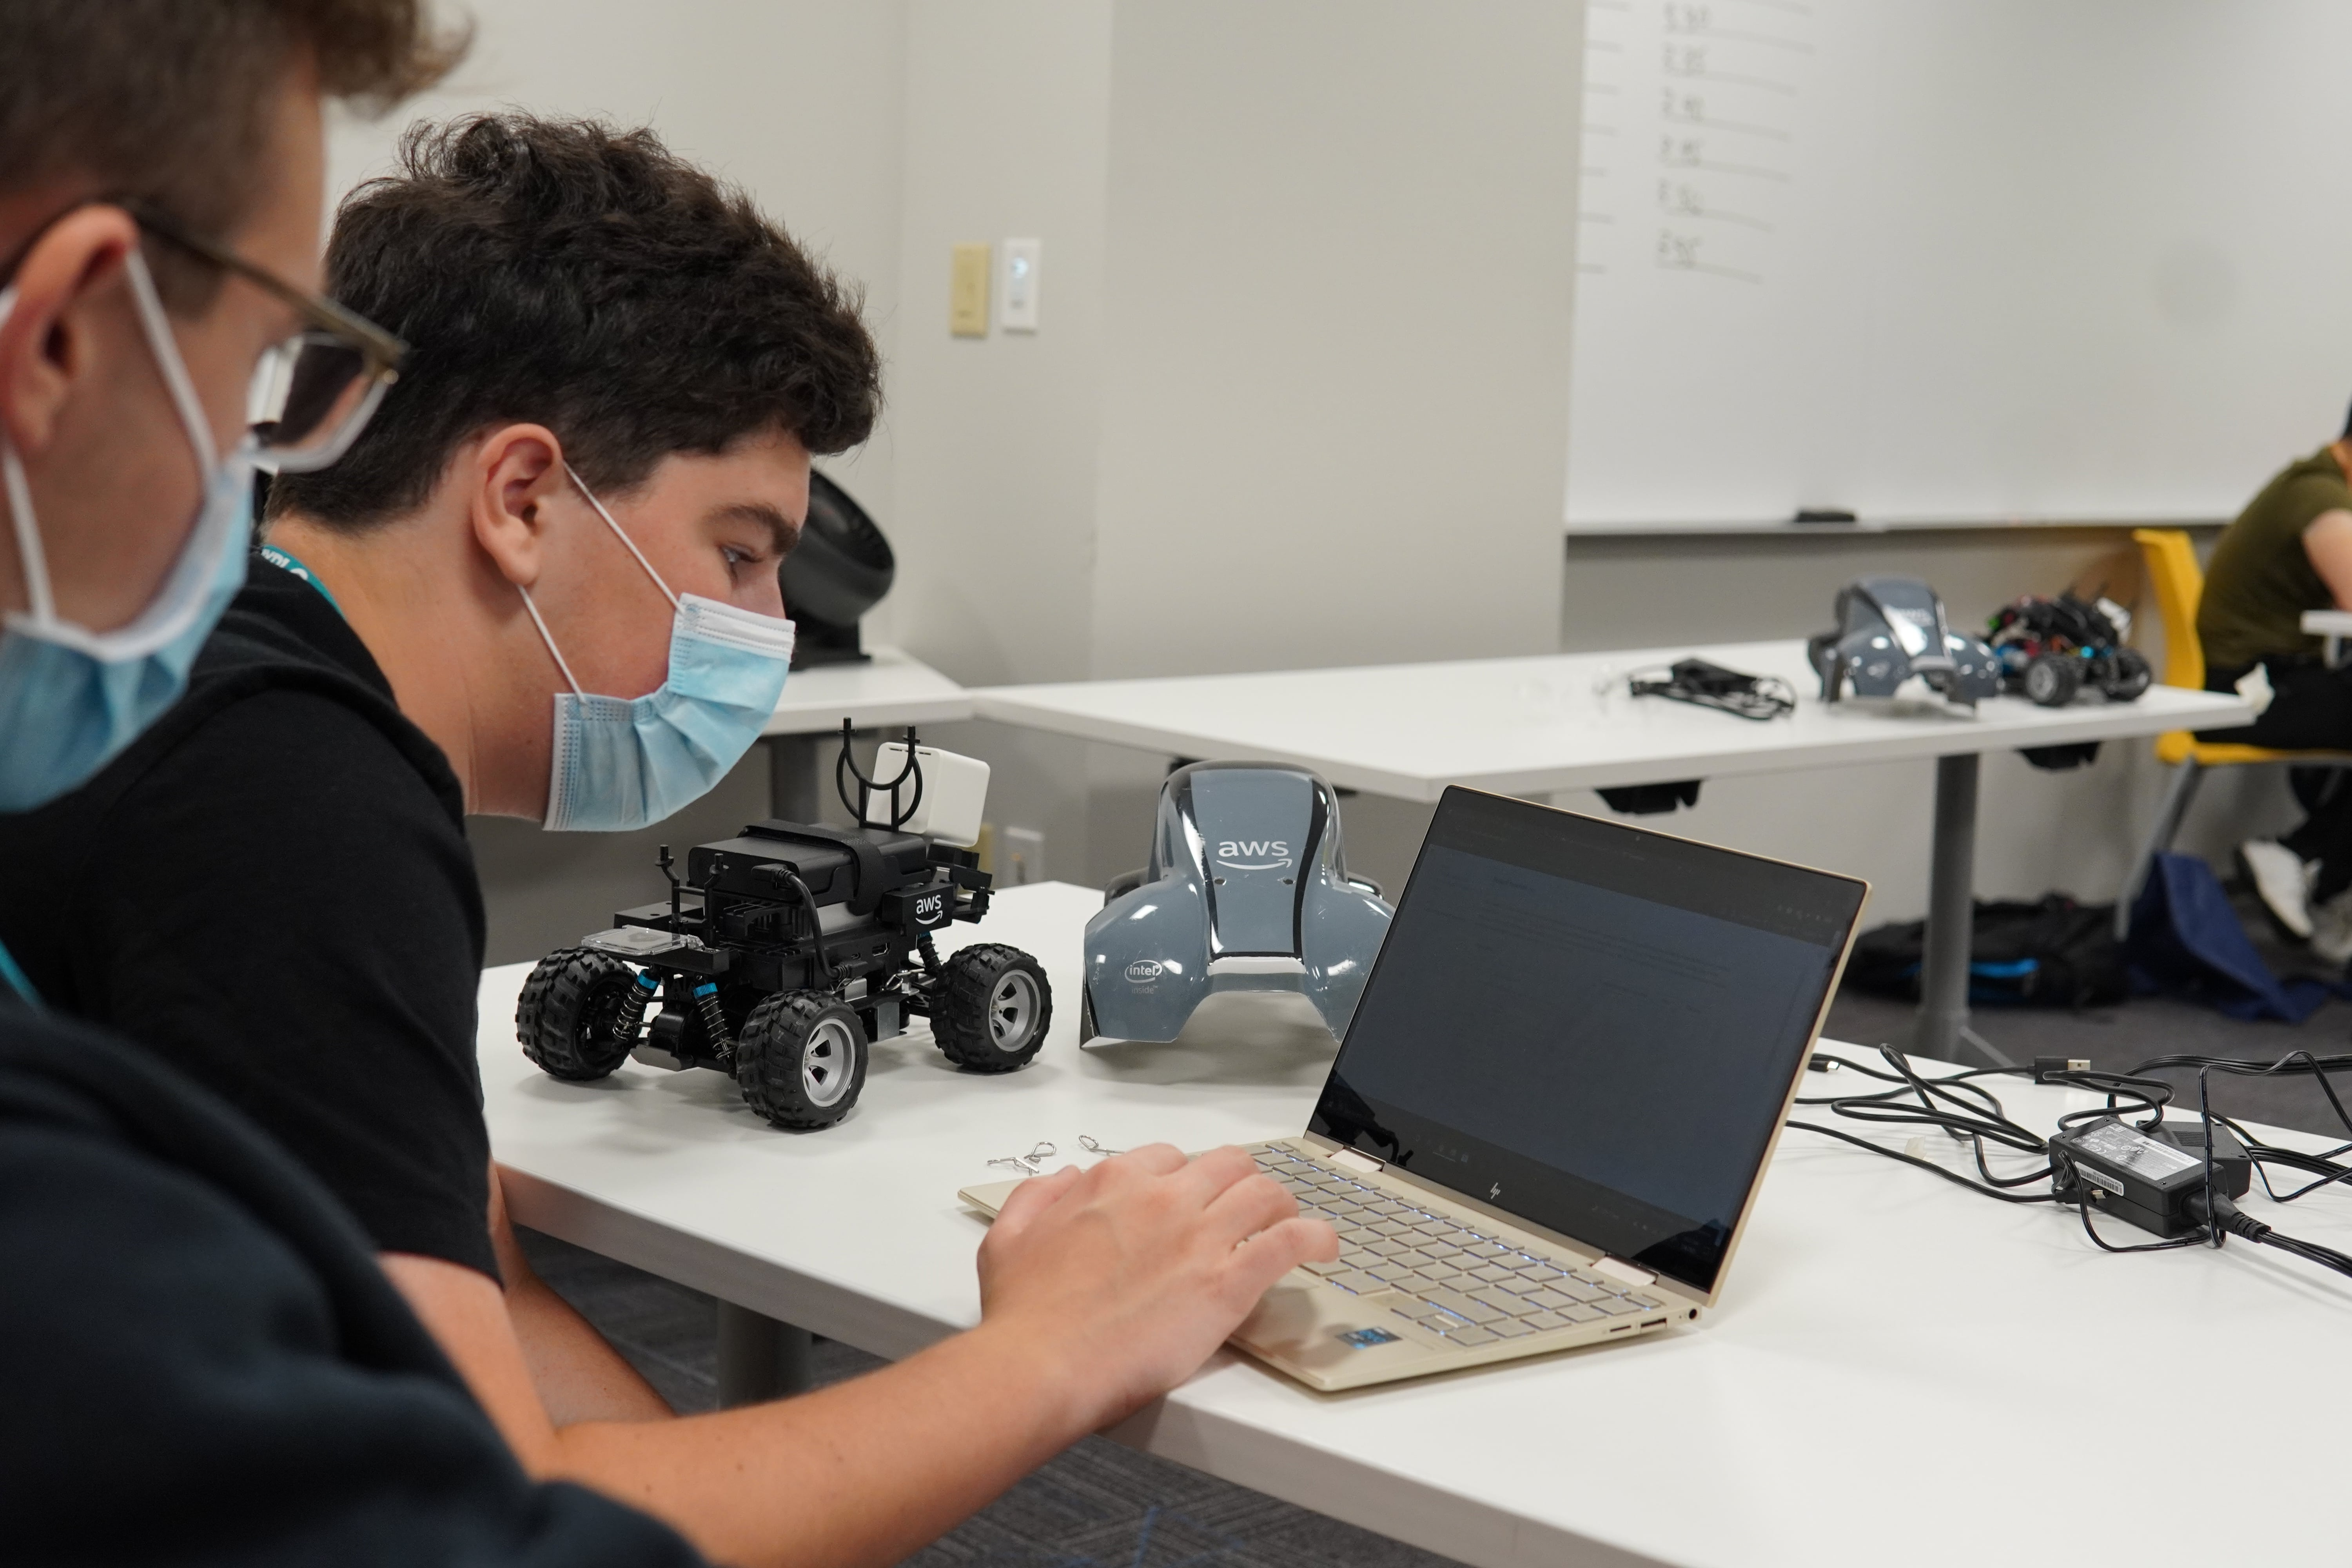 Two students lean in to check the data from their test run on their computer. Their self driving car is deconstructed on the table next to them.